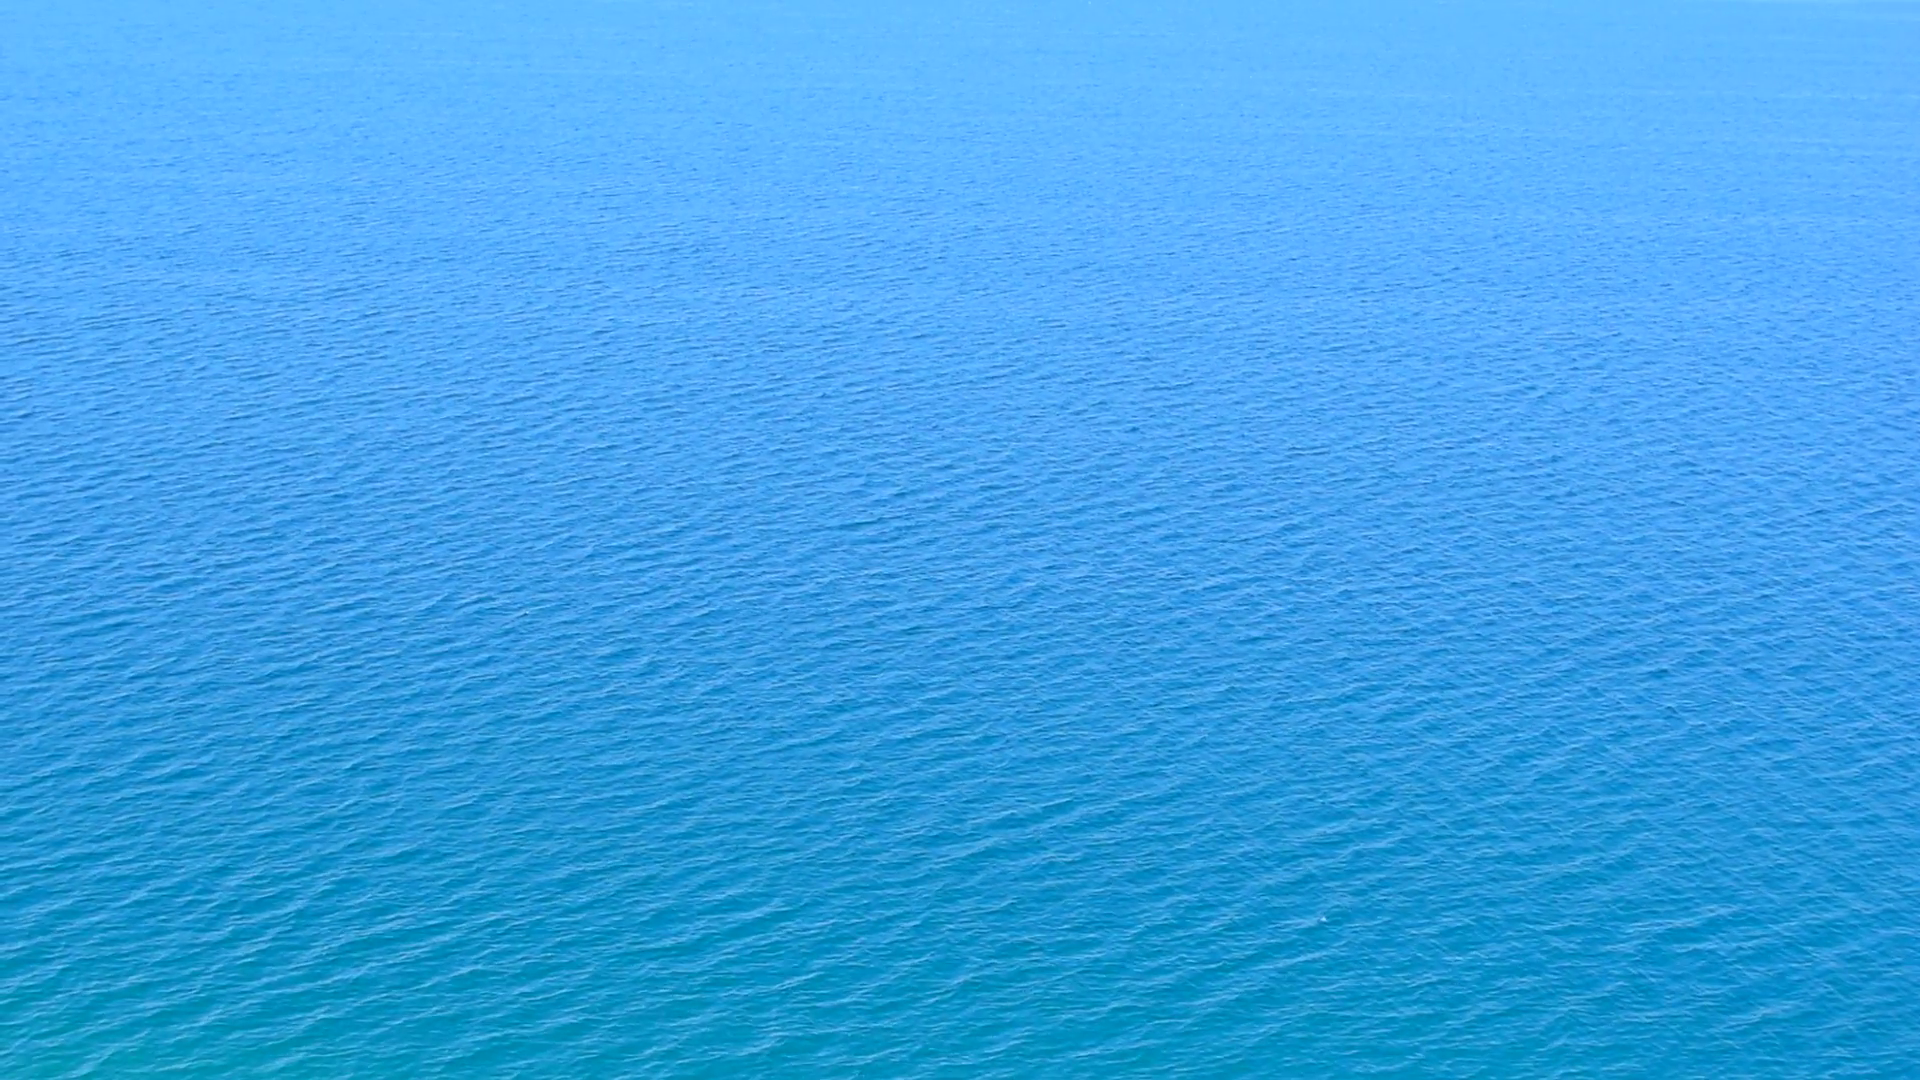 Sea Background PNG - 147264